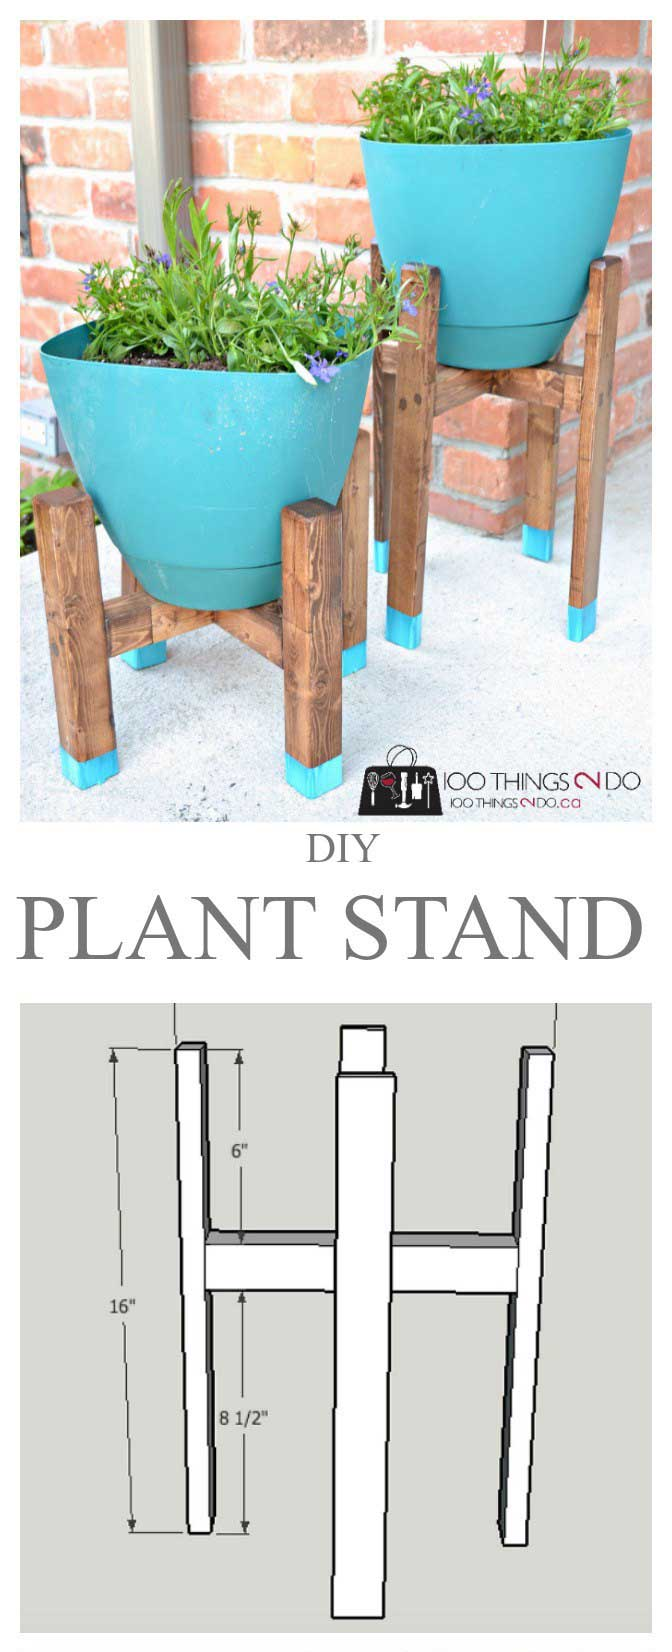 DIY Plant Stand Just For $5.